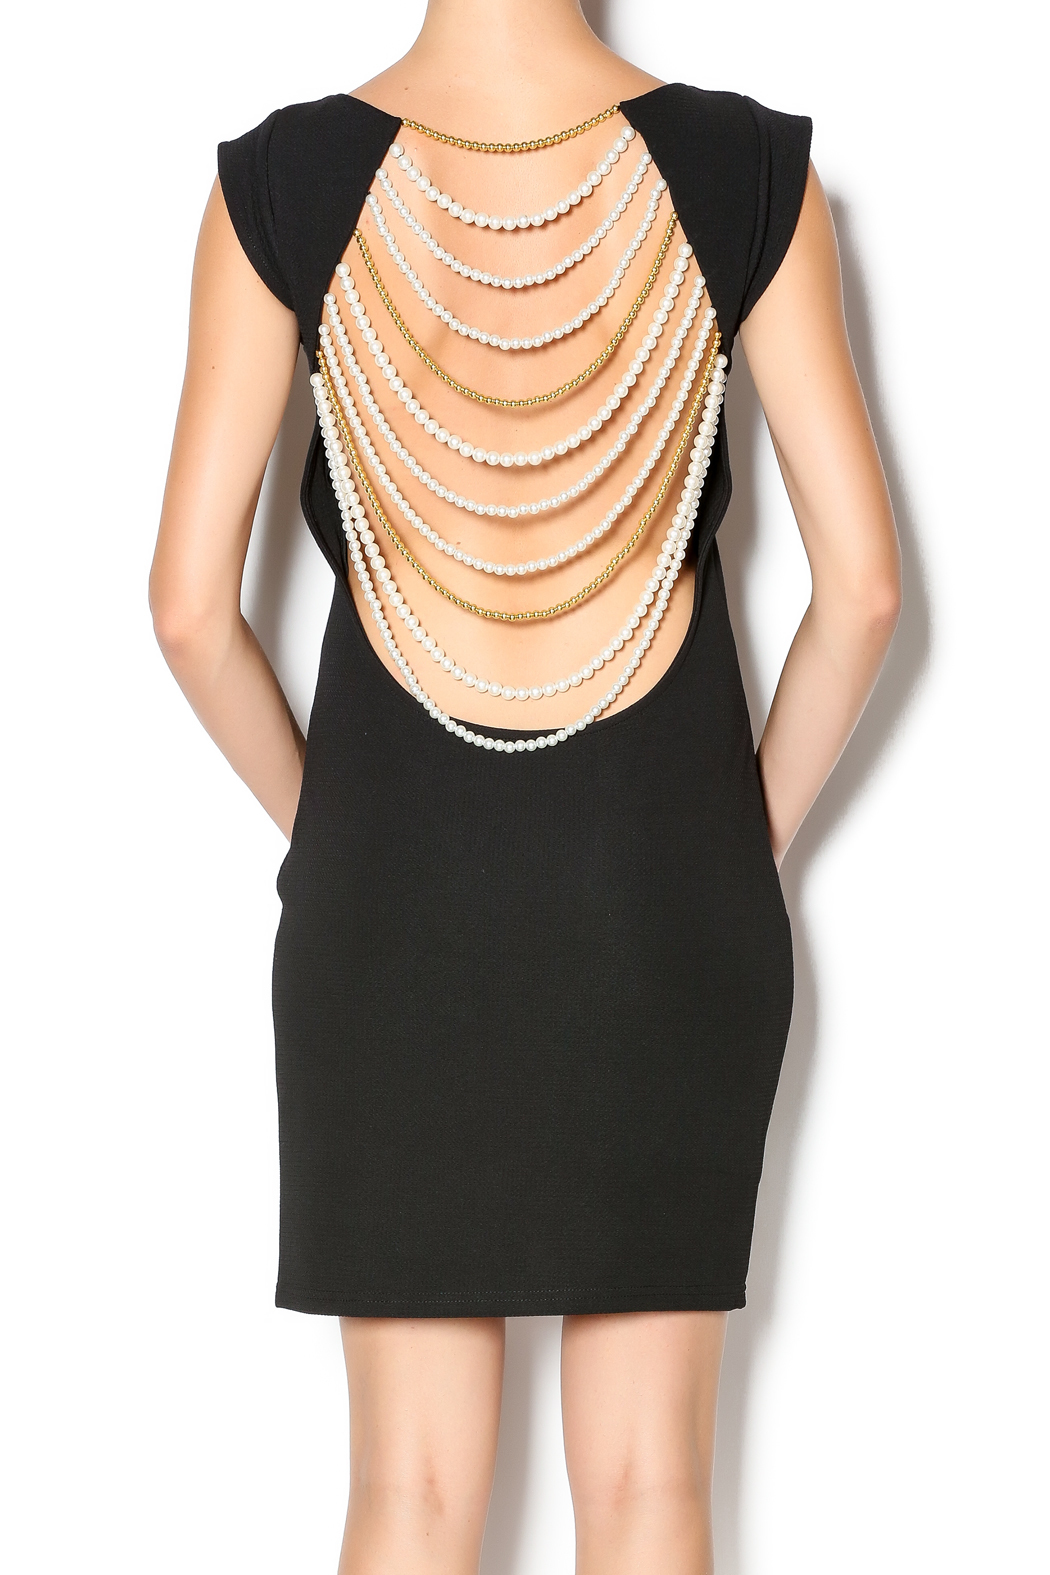 strappy back tablet product image and dress drapes drape black jess flare xl fit boohoo main